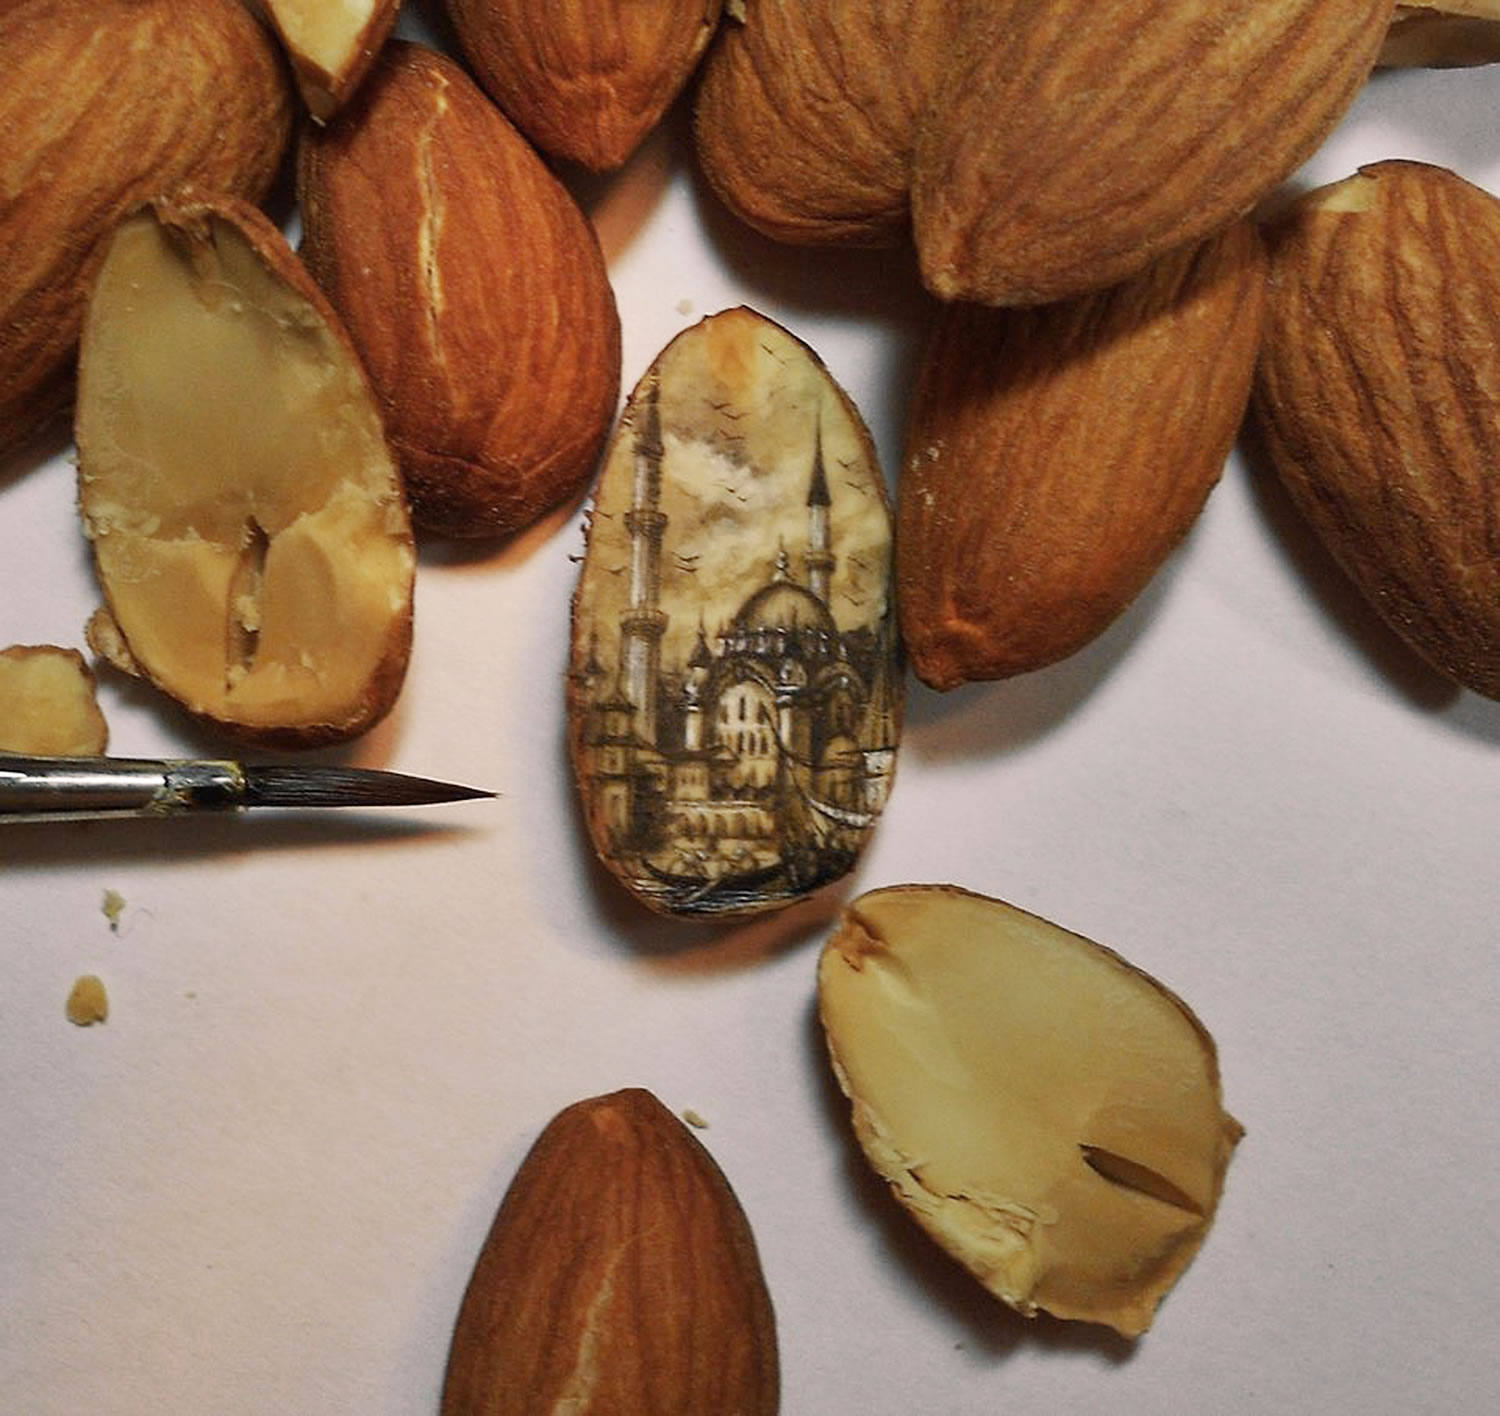 painting on almond by Hasan Kale